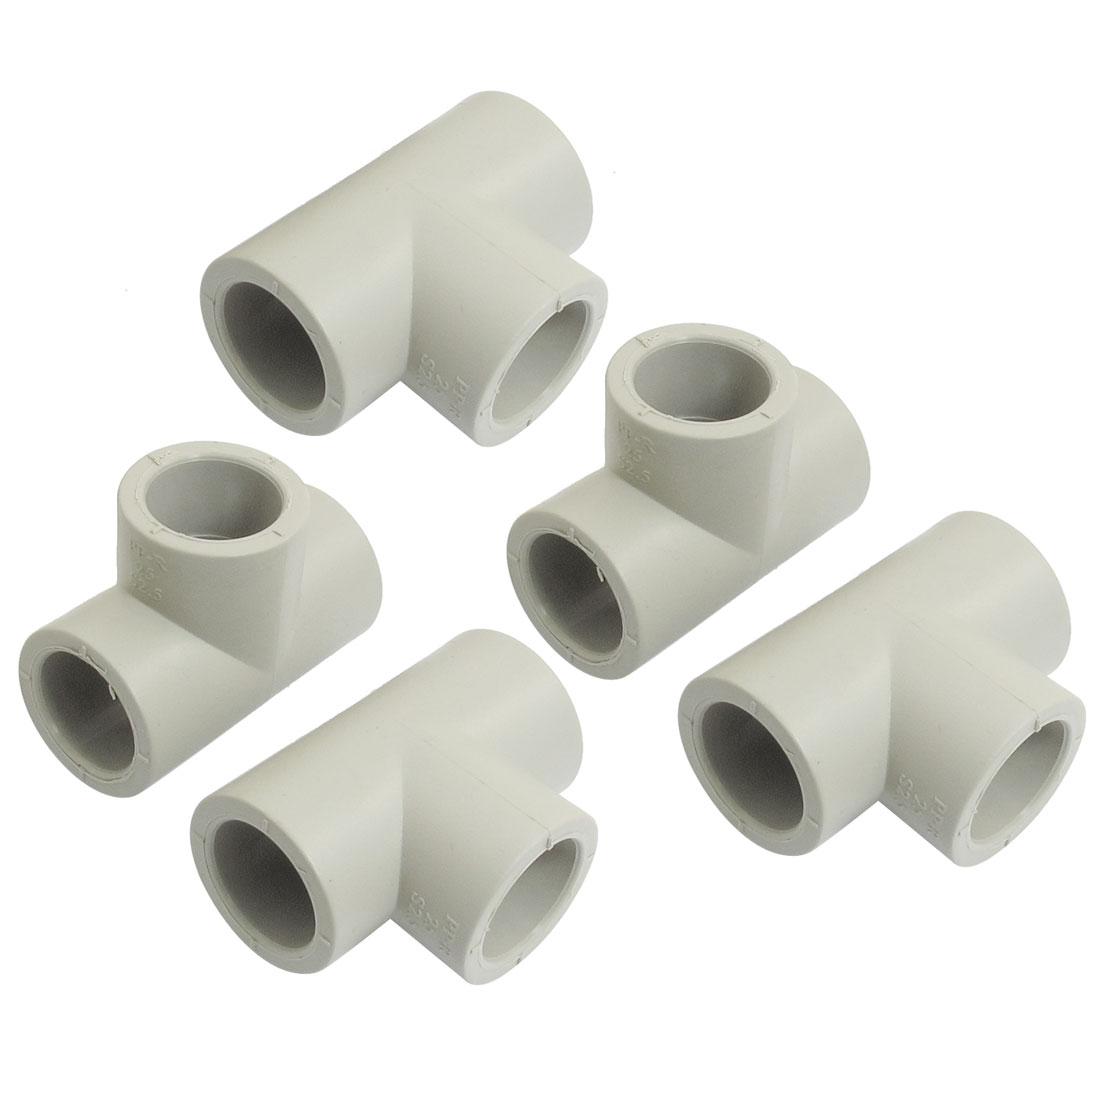 5 Pcs 25mm Hole 3 Ways PPR Pipe Tee Shaped Connectors Fittings